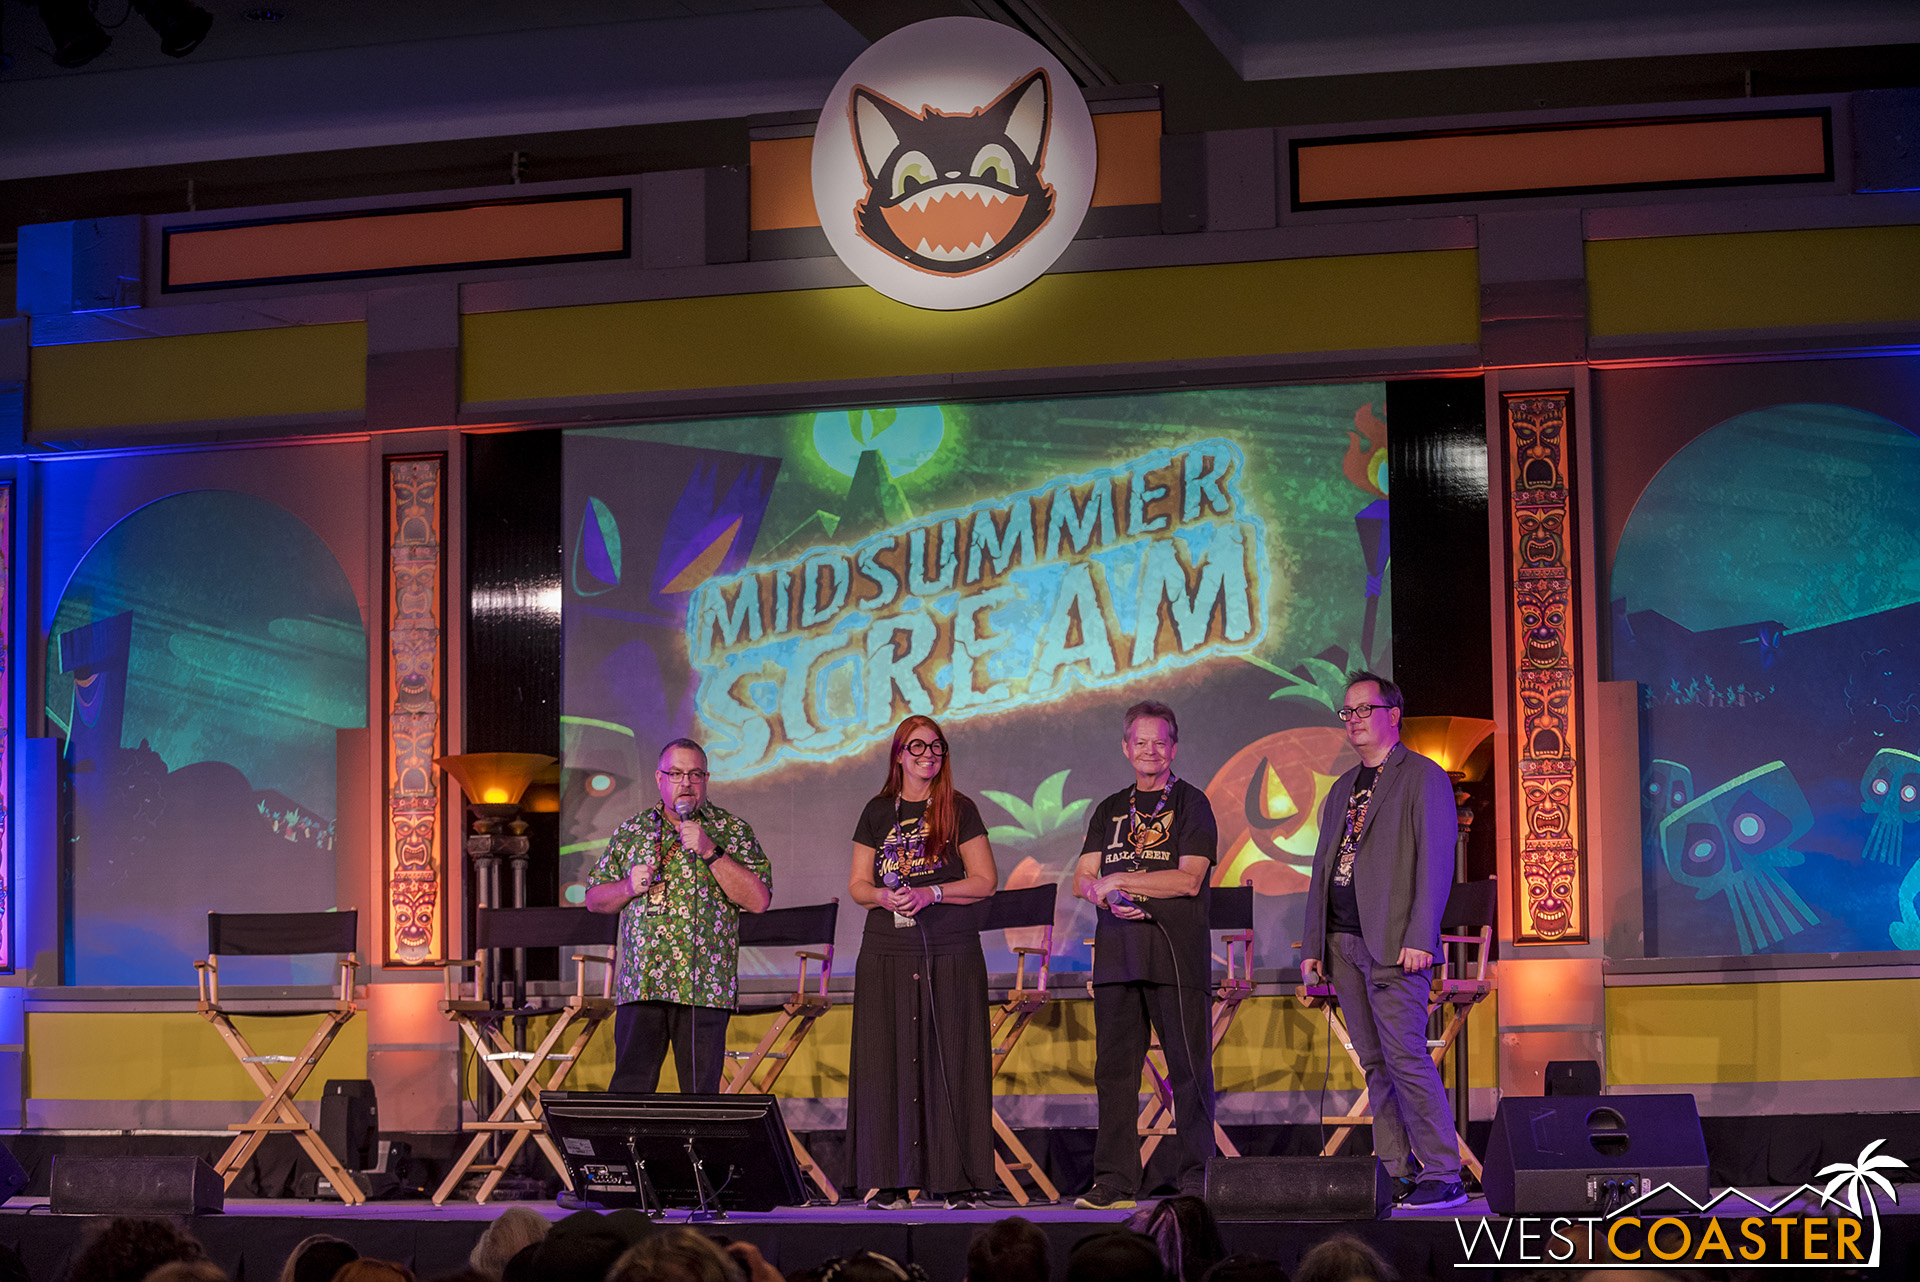 The core team behind Midsummer Scream addresses the audience before the first main stage panel.